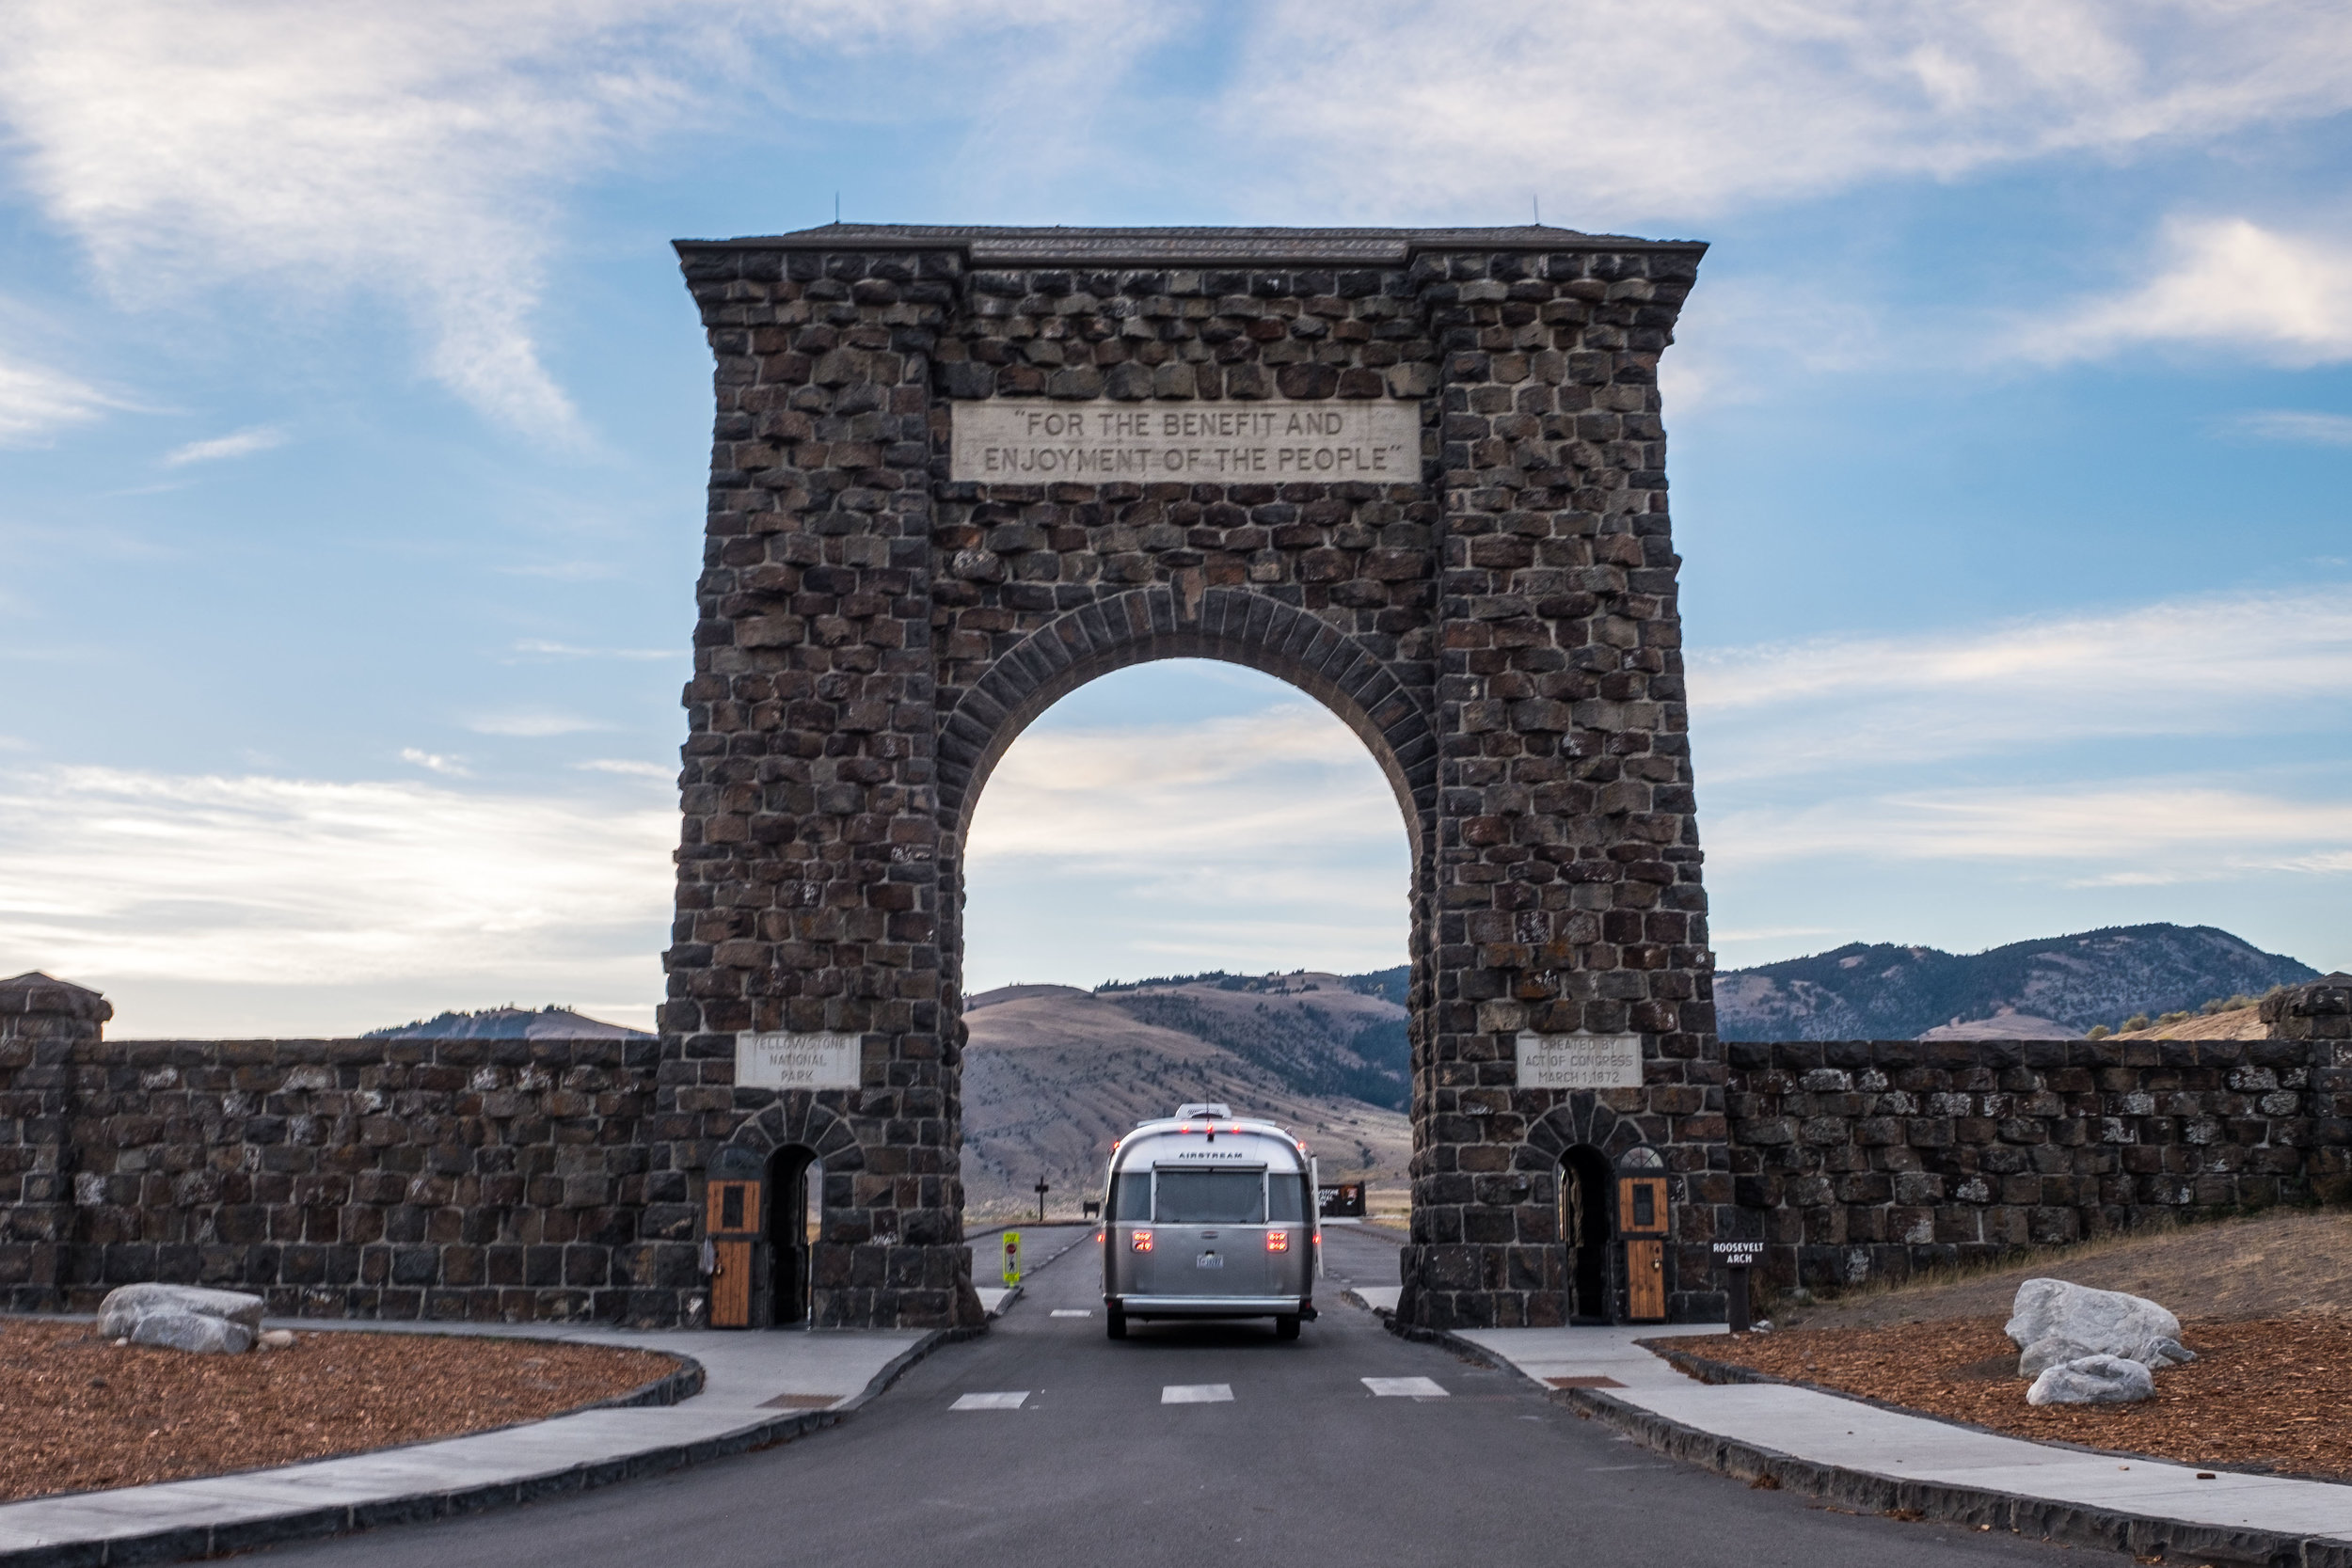 The infamous Gardiner Gateway into Yellowstone. This is a sacred entrance, and Wally was especially humbled to be passing through these hallowed gates.